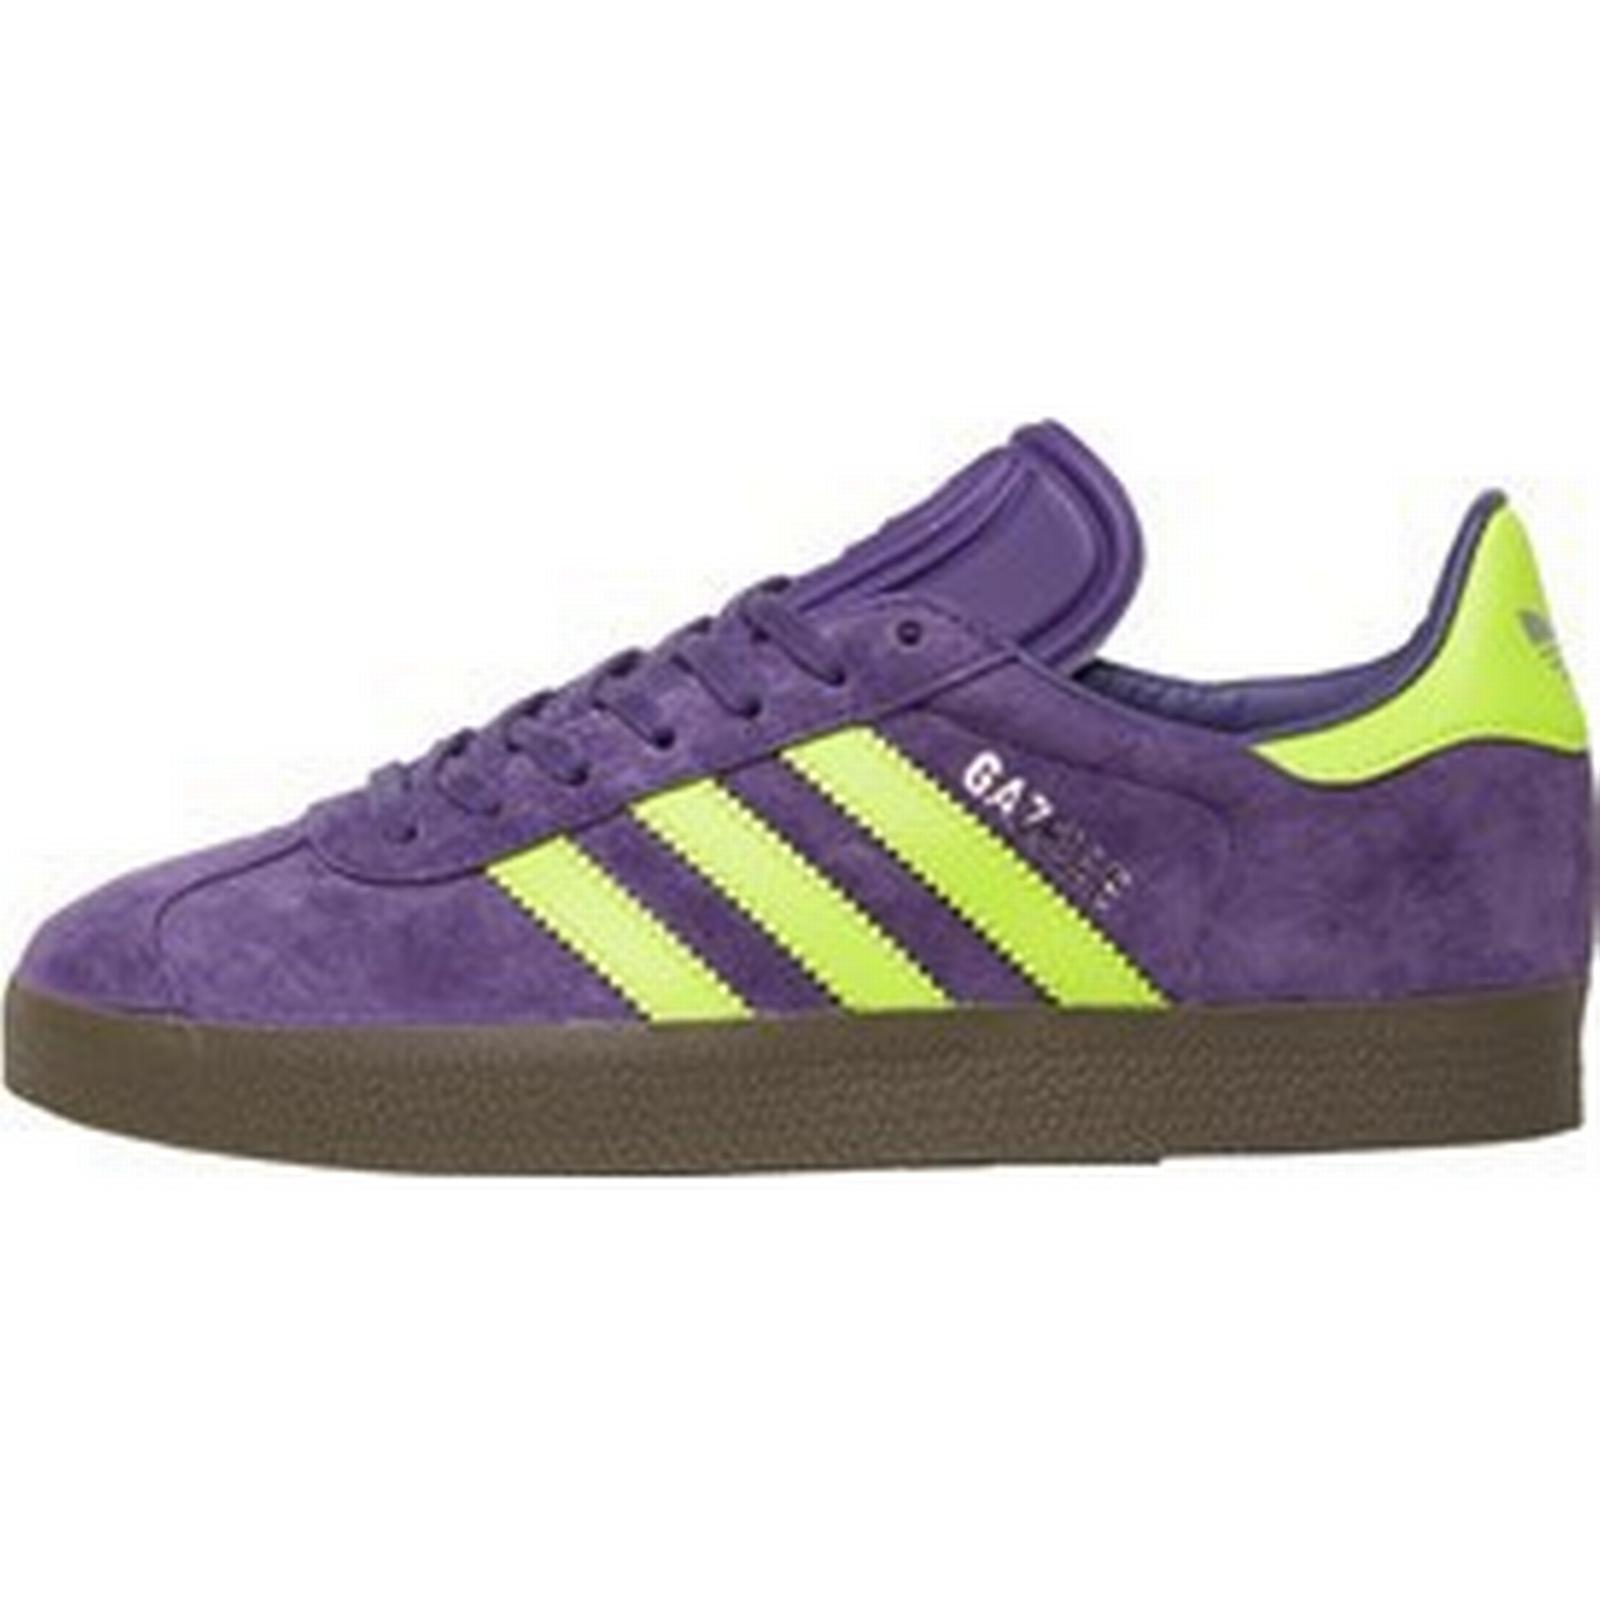 Adidas Originals Mens Gazelle Unity Trainers Unity Gazelle Purple/Solar Yellow/Gum5 26578c